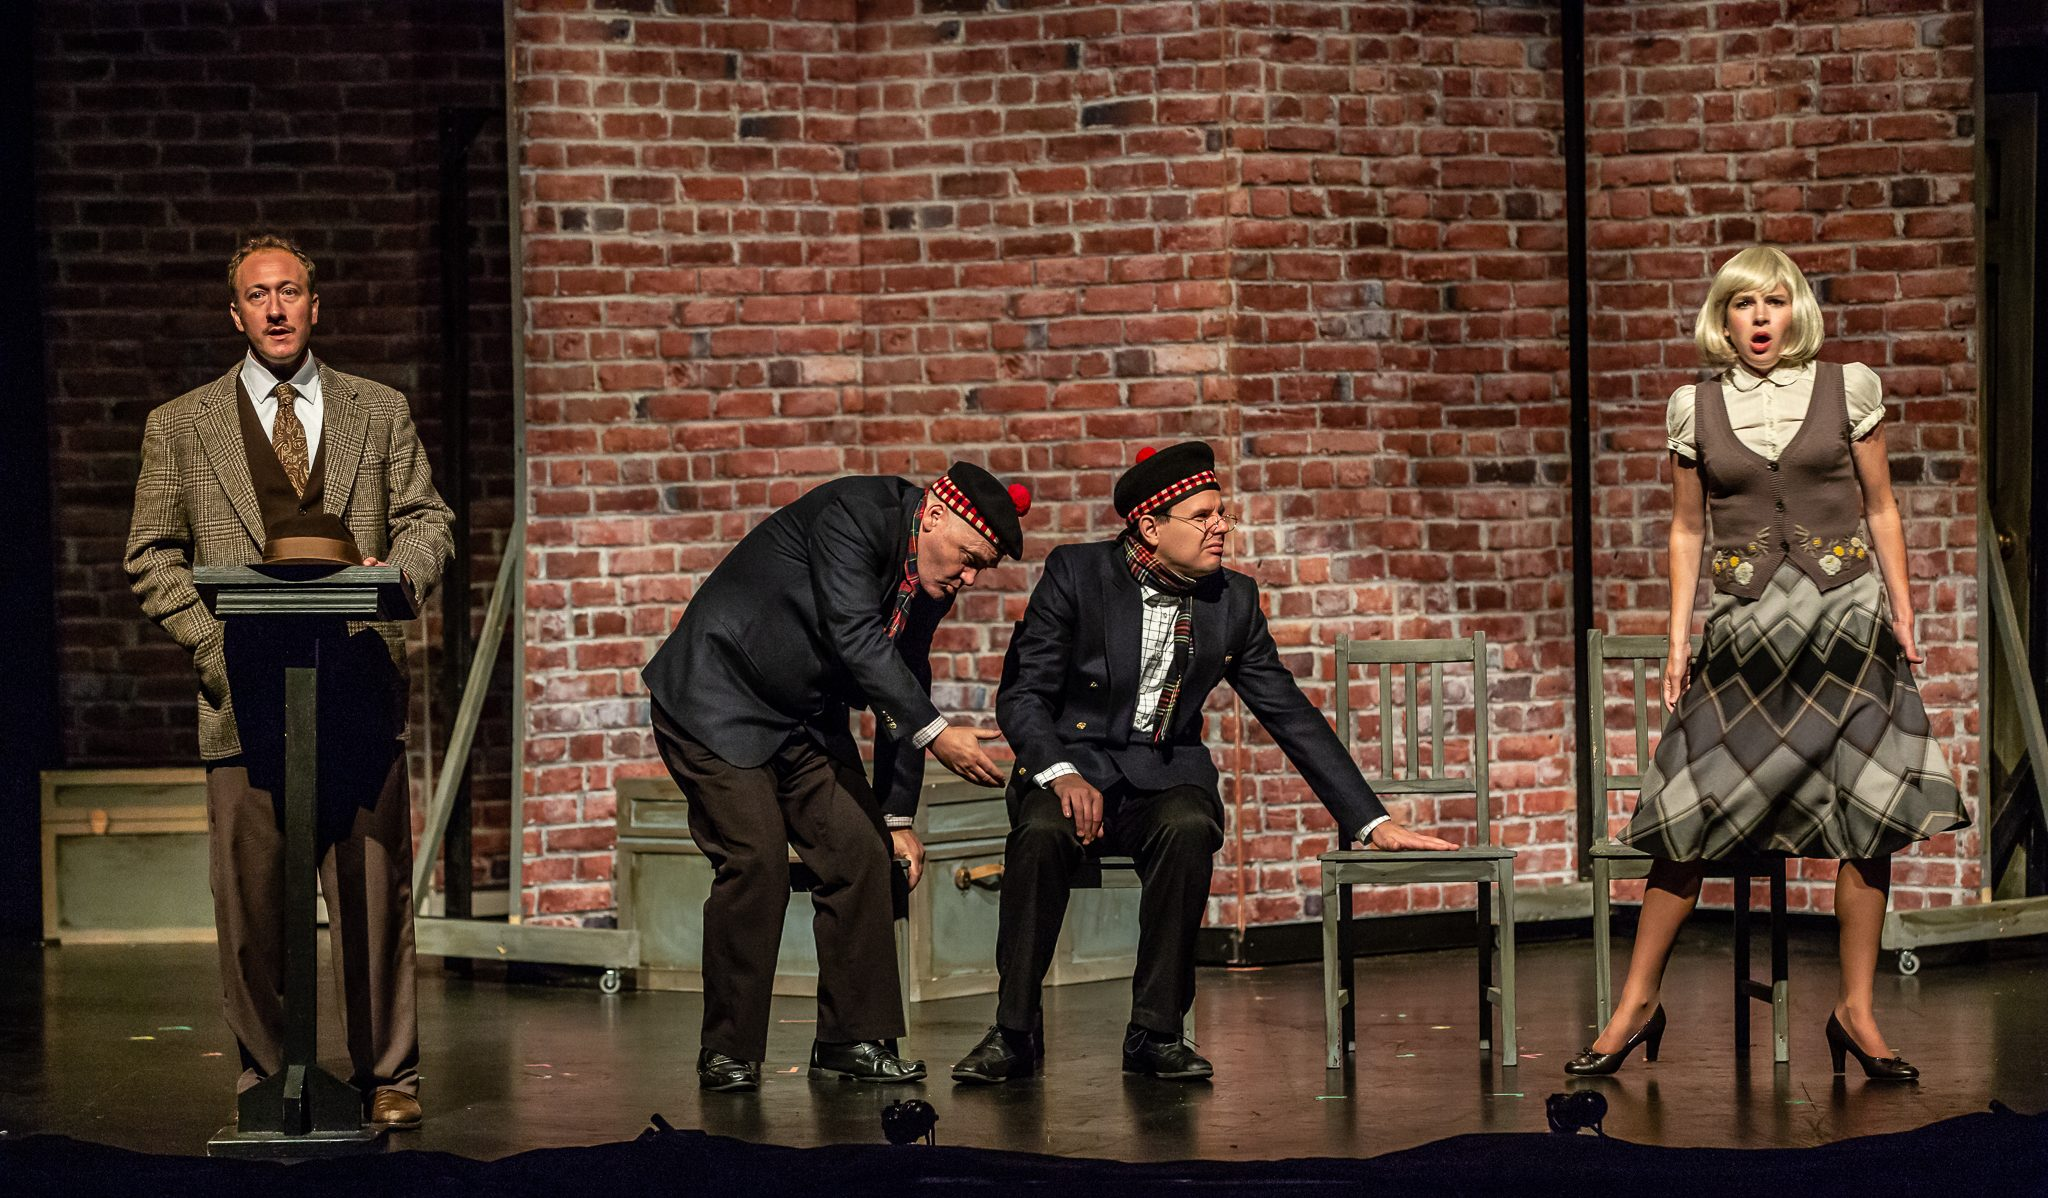 Perry, Sweeney MacArthur, Sean Hauk & Erin Mackinnon in THE 39 STEPS at Port Hope Capitol Theatre